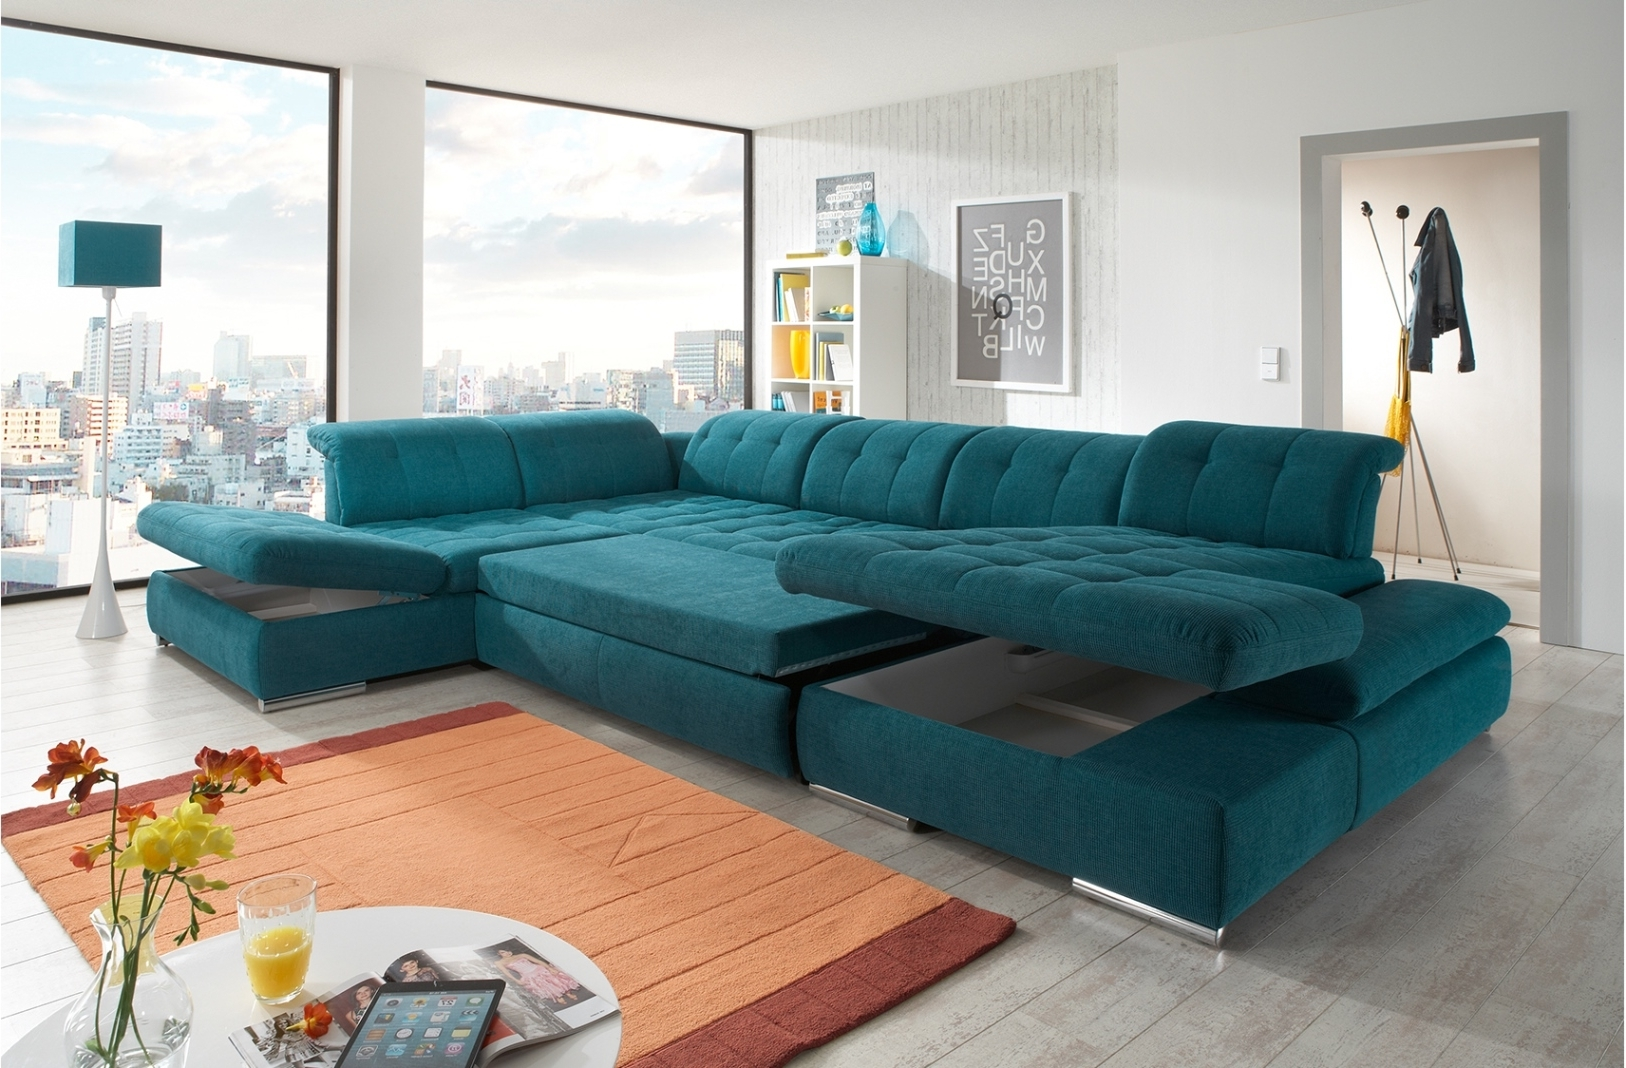 Green Sectional Sofas Intended For 2017 Alpine Sectional Sofa : Sleeper With Storage (View 15 of 15)